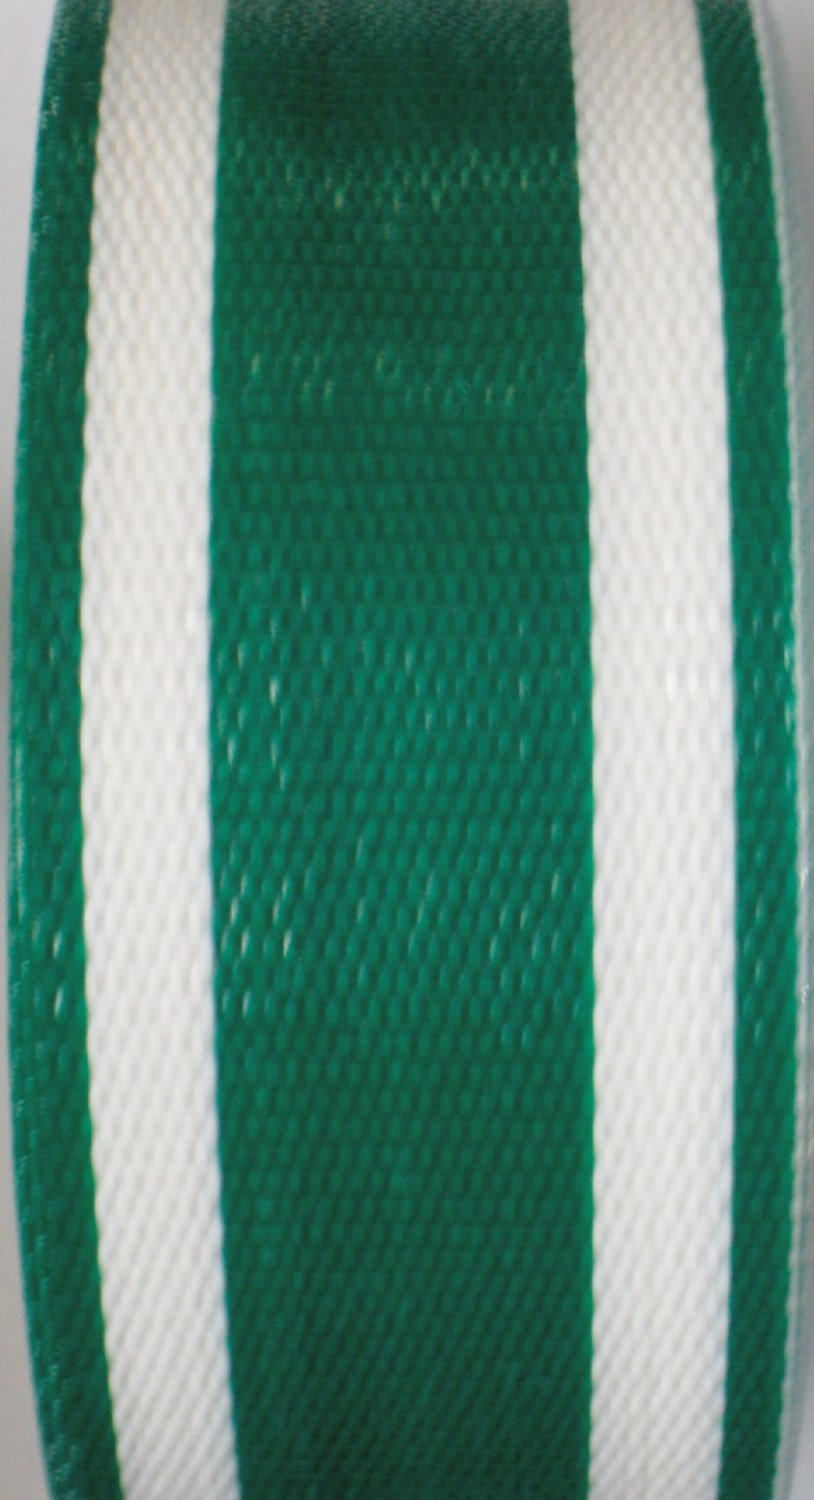 Lawn Chair Webbing 100 ft roll - Green Stripe - by WebbingProTM